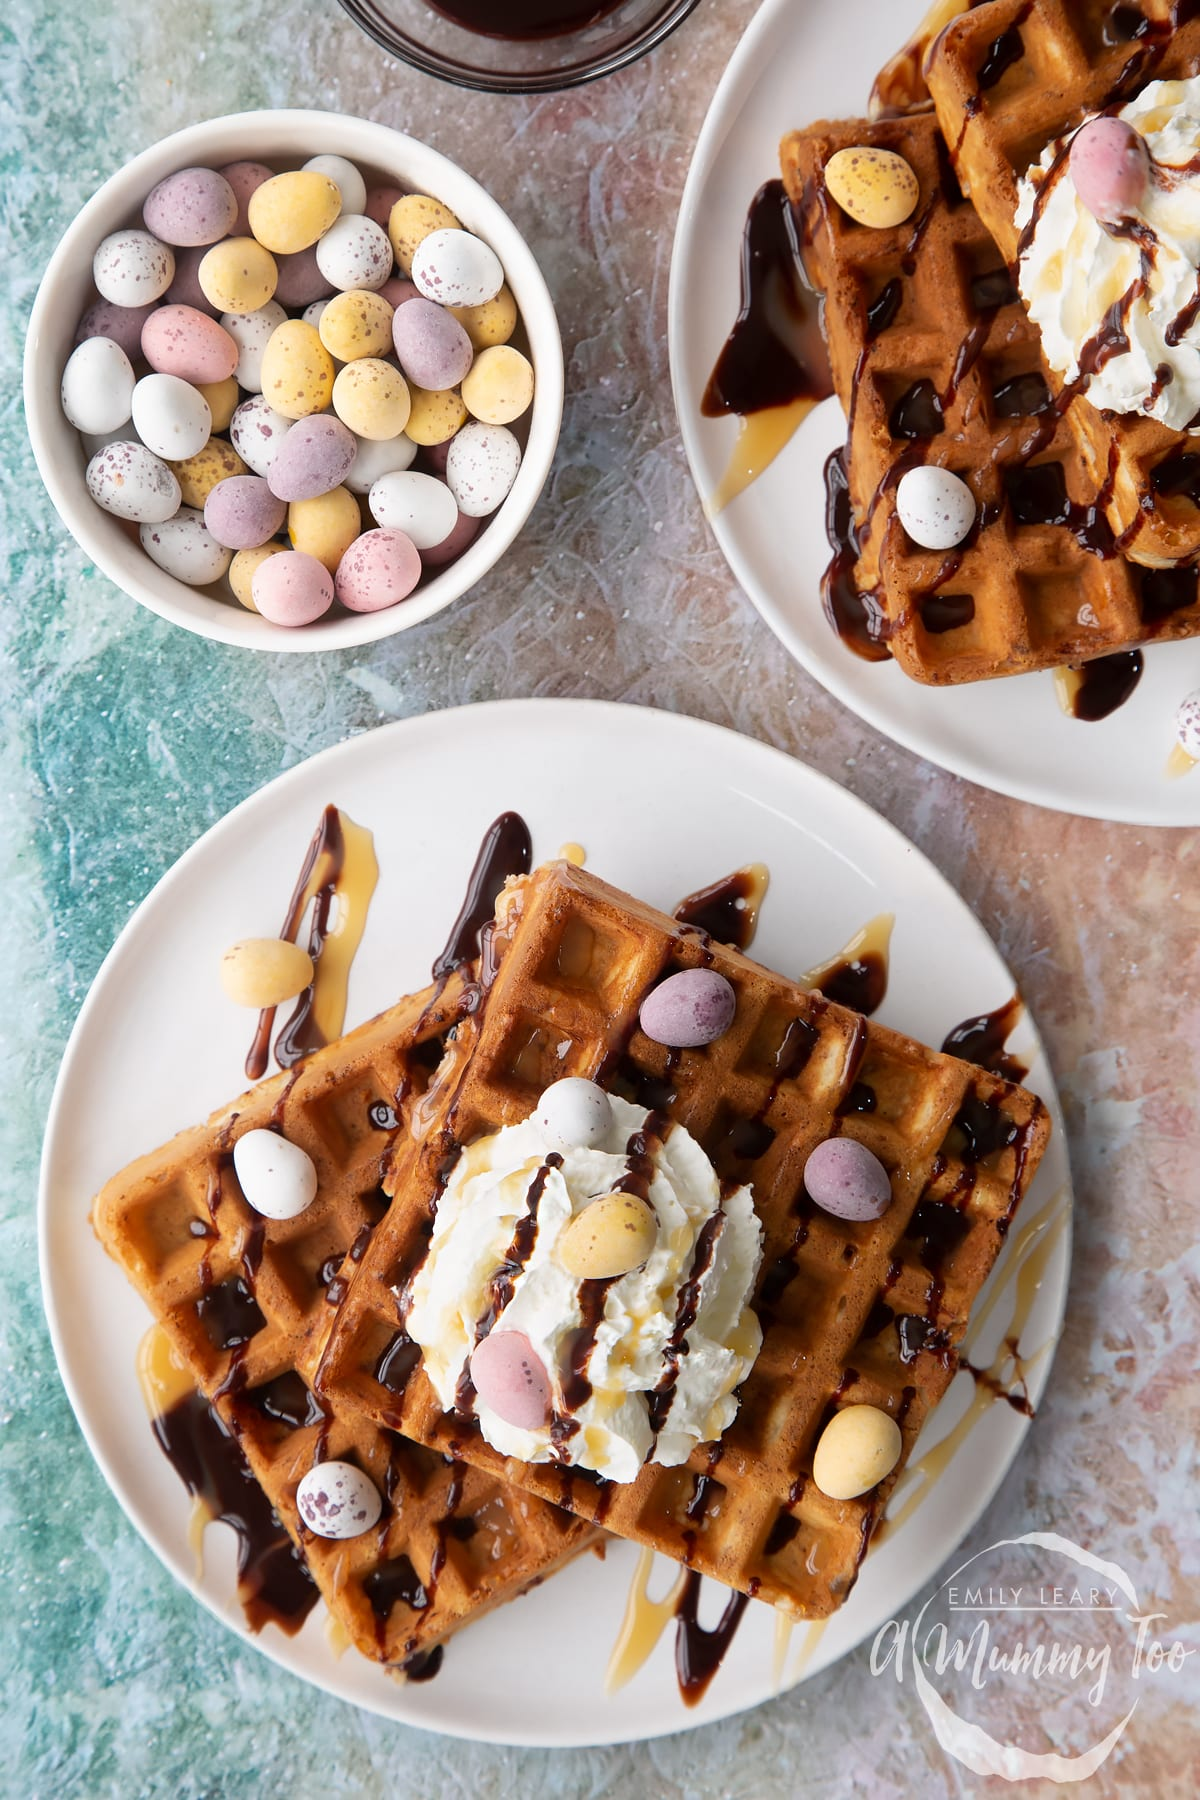 Mini egg waffles shown from above on white plates. They are topped with squirty cream, chocolate sauce, toffee sauce and Mini Eggs.